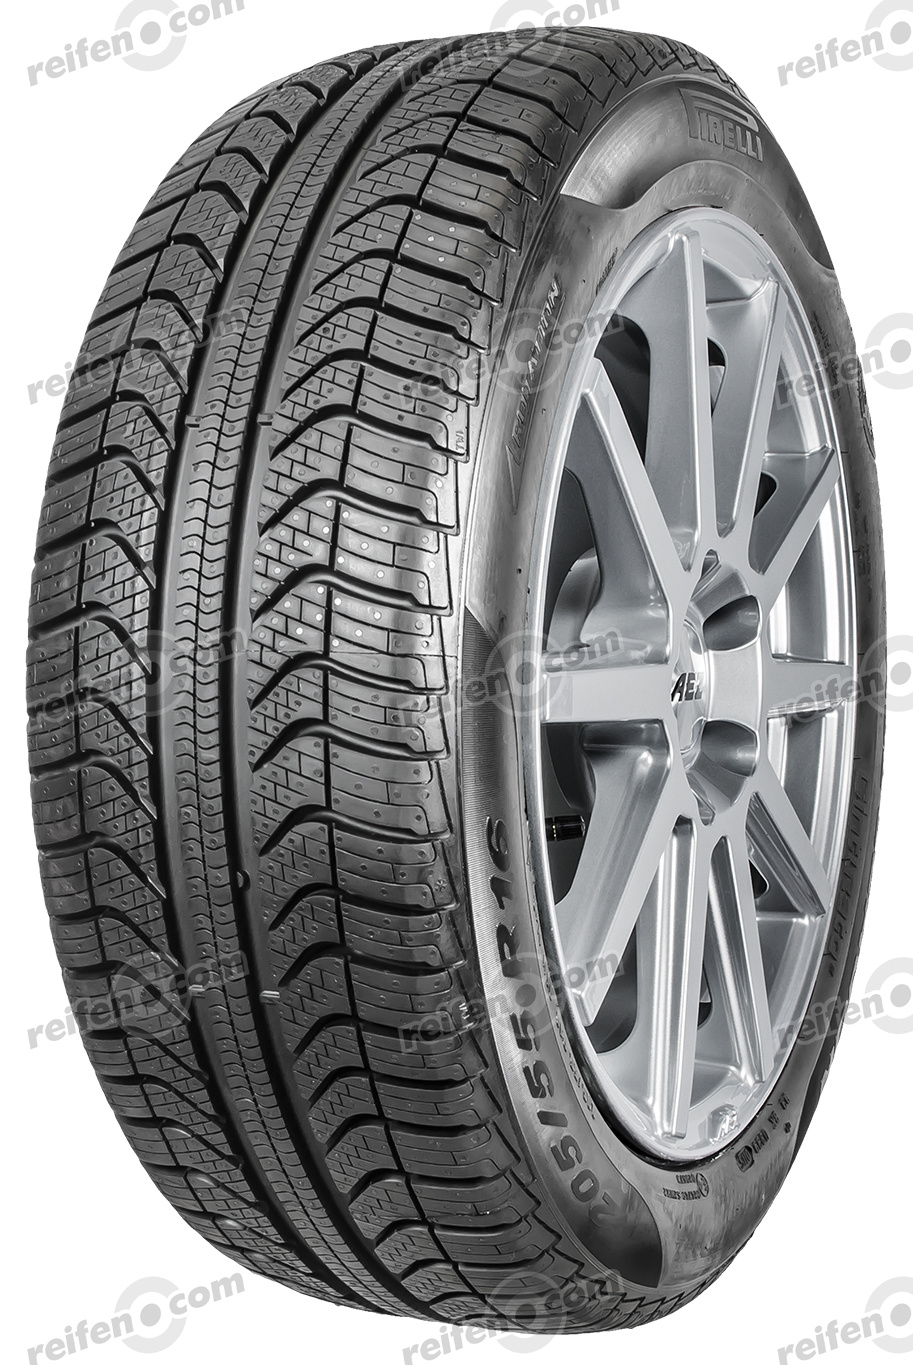 205/55 R16 91H Cinturato All Season M+S  Cinturato All Season M+S